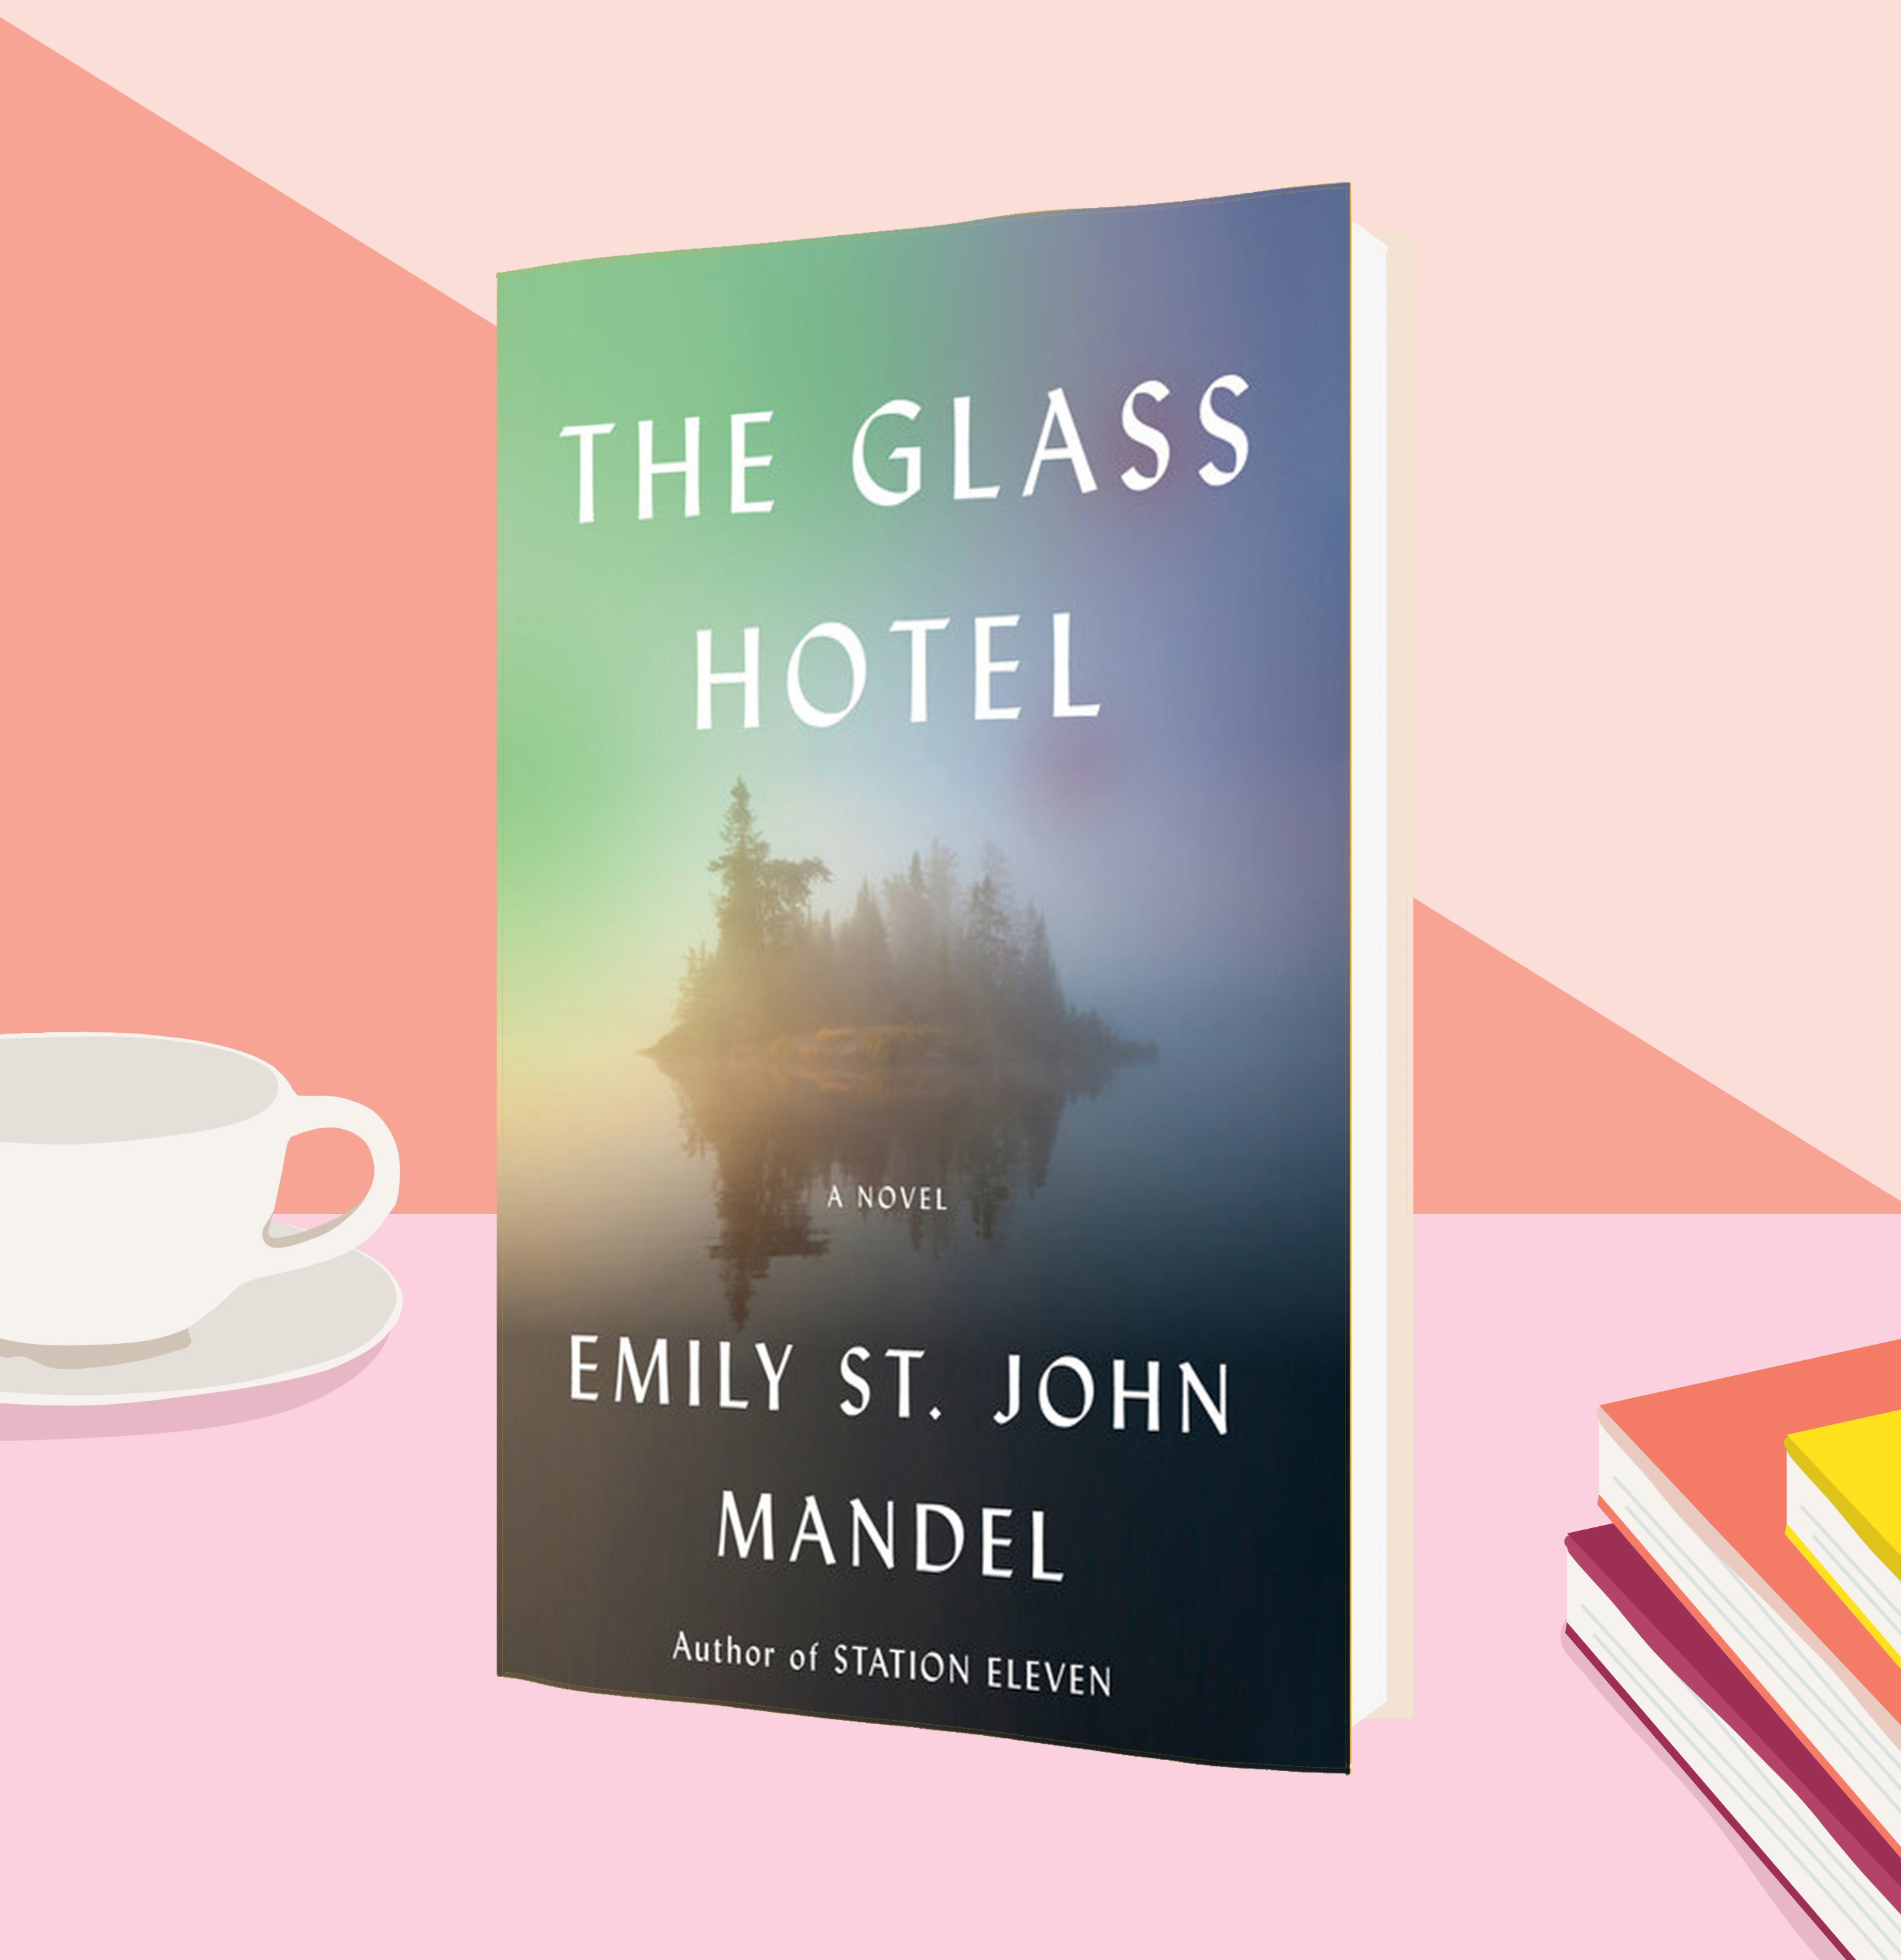 Cover of The Glass Hotel, by Emily St. John Mandel